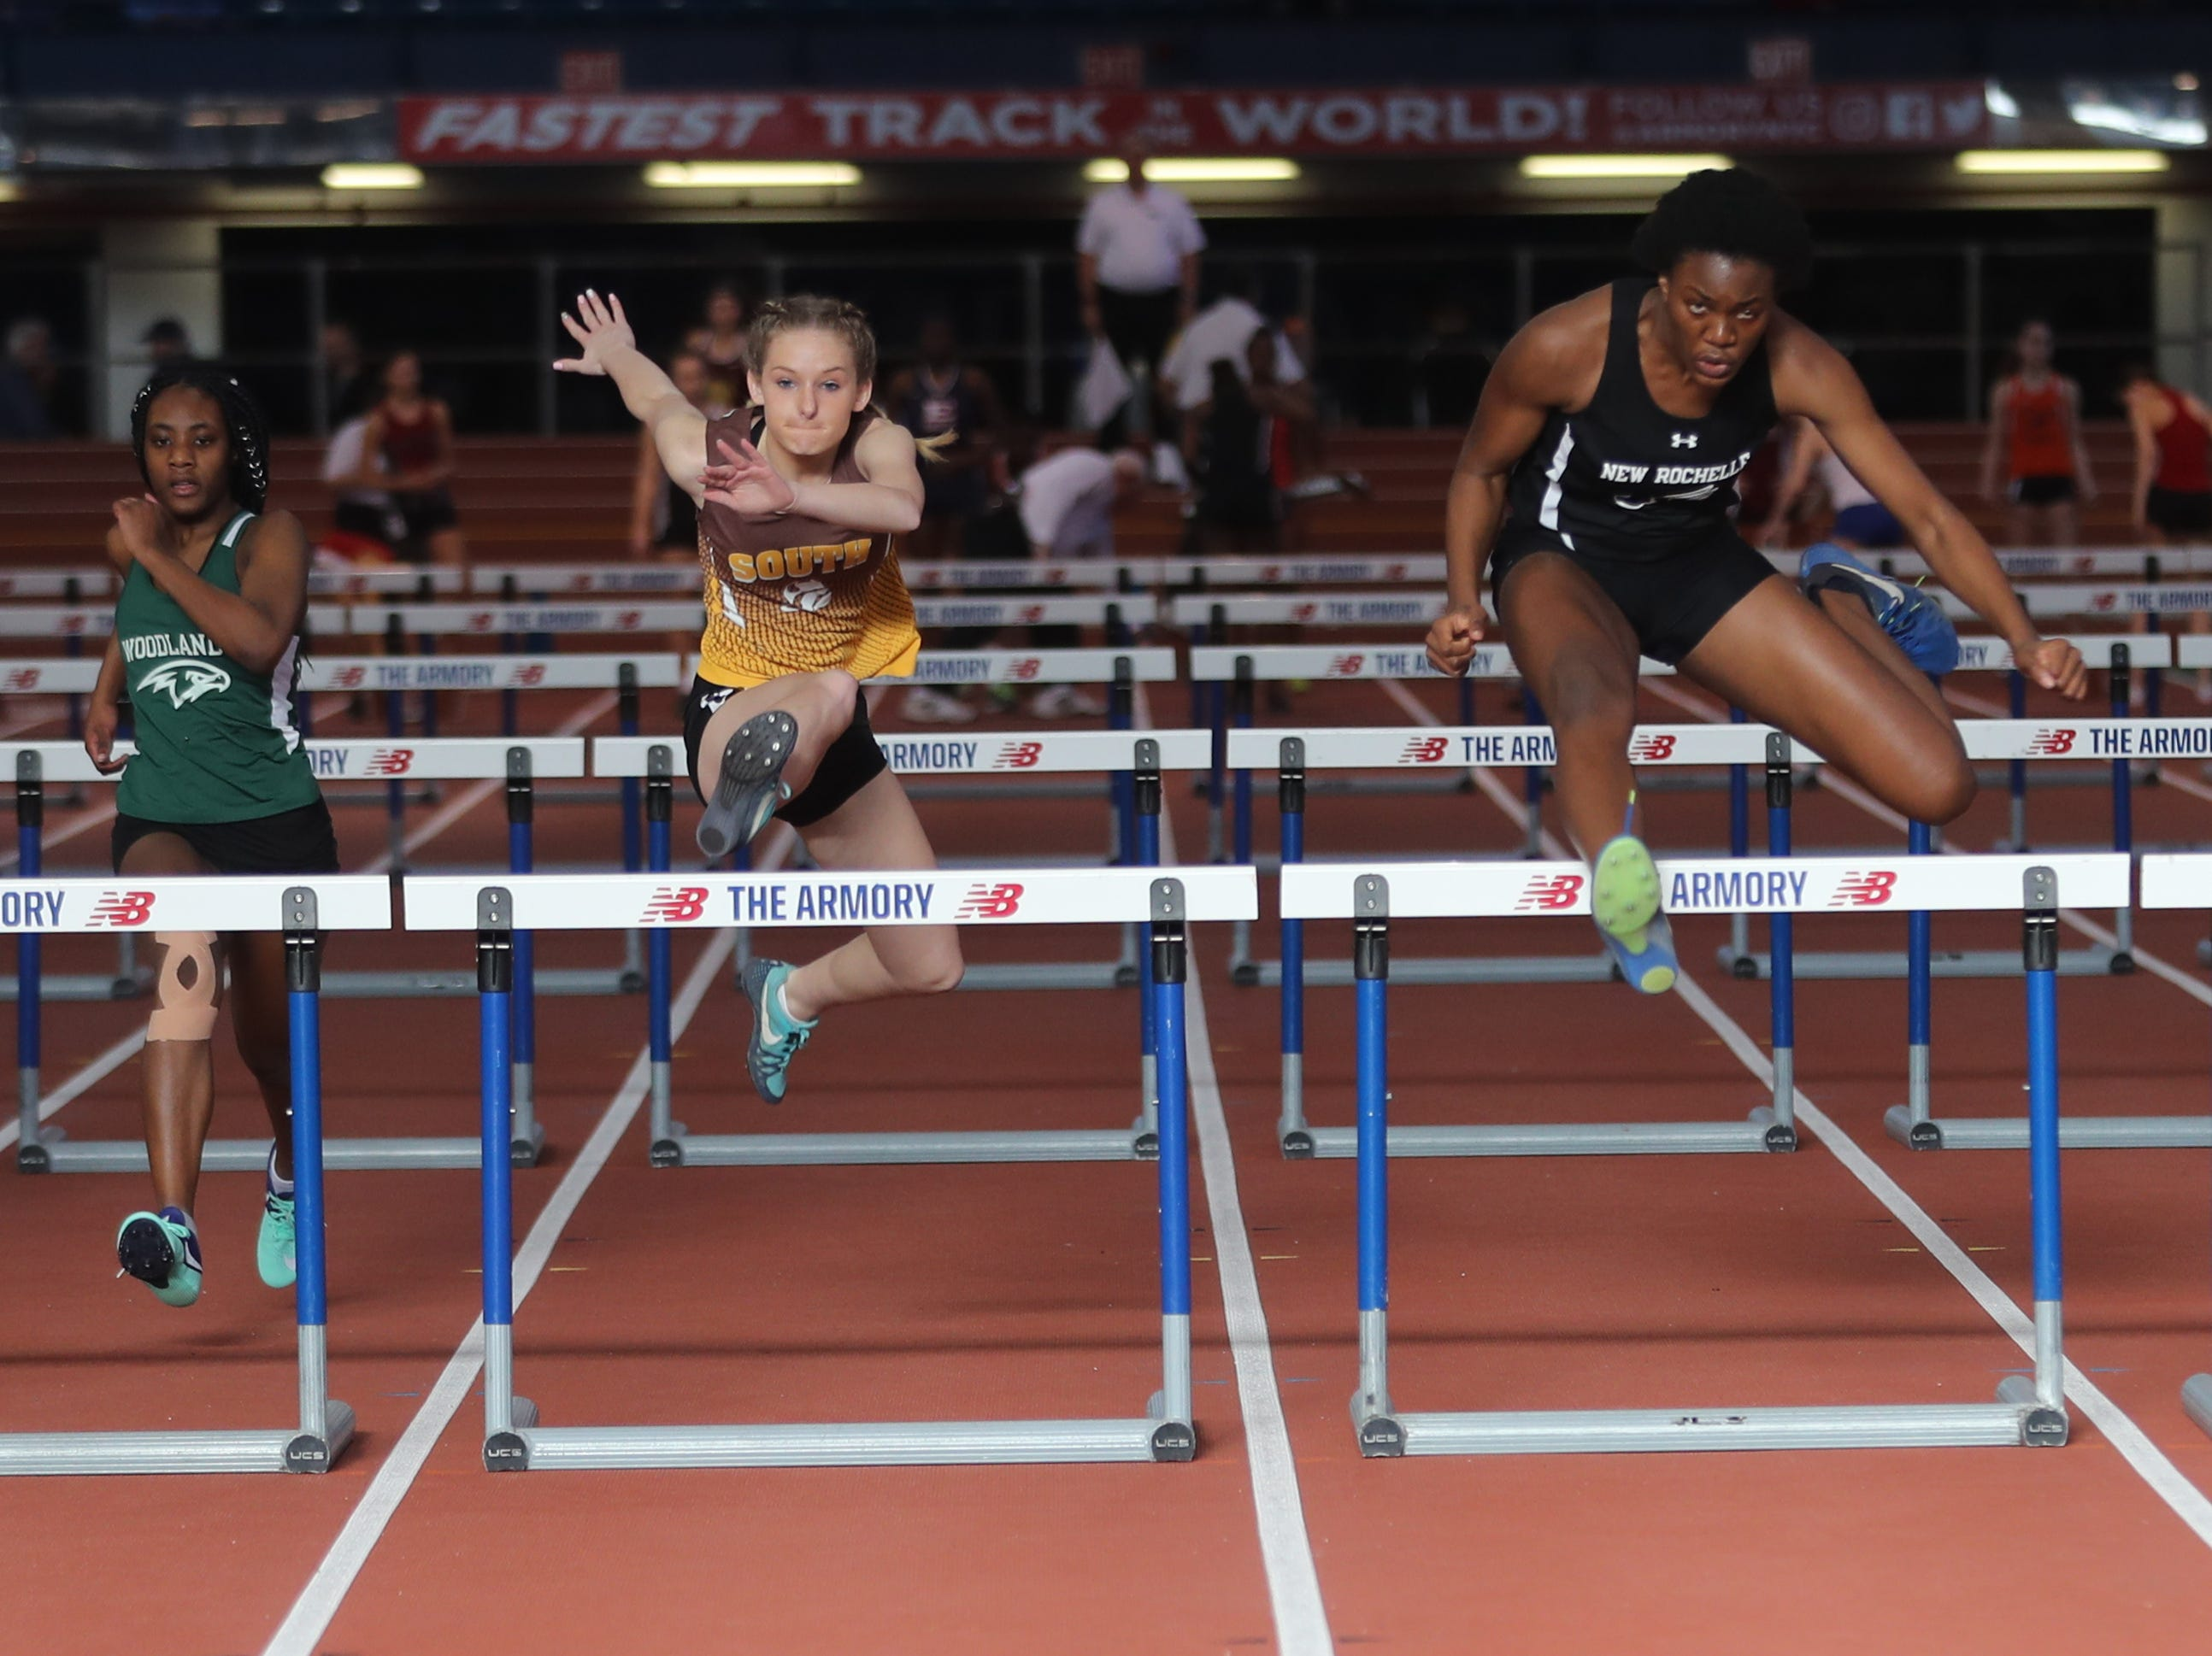 Athletes compete in the 55 meter hurdles during the Section 1 New York State Track and Field State Qualifier at the New Balance Armory in Manhattan Feb. 17, 2019.